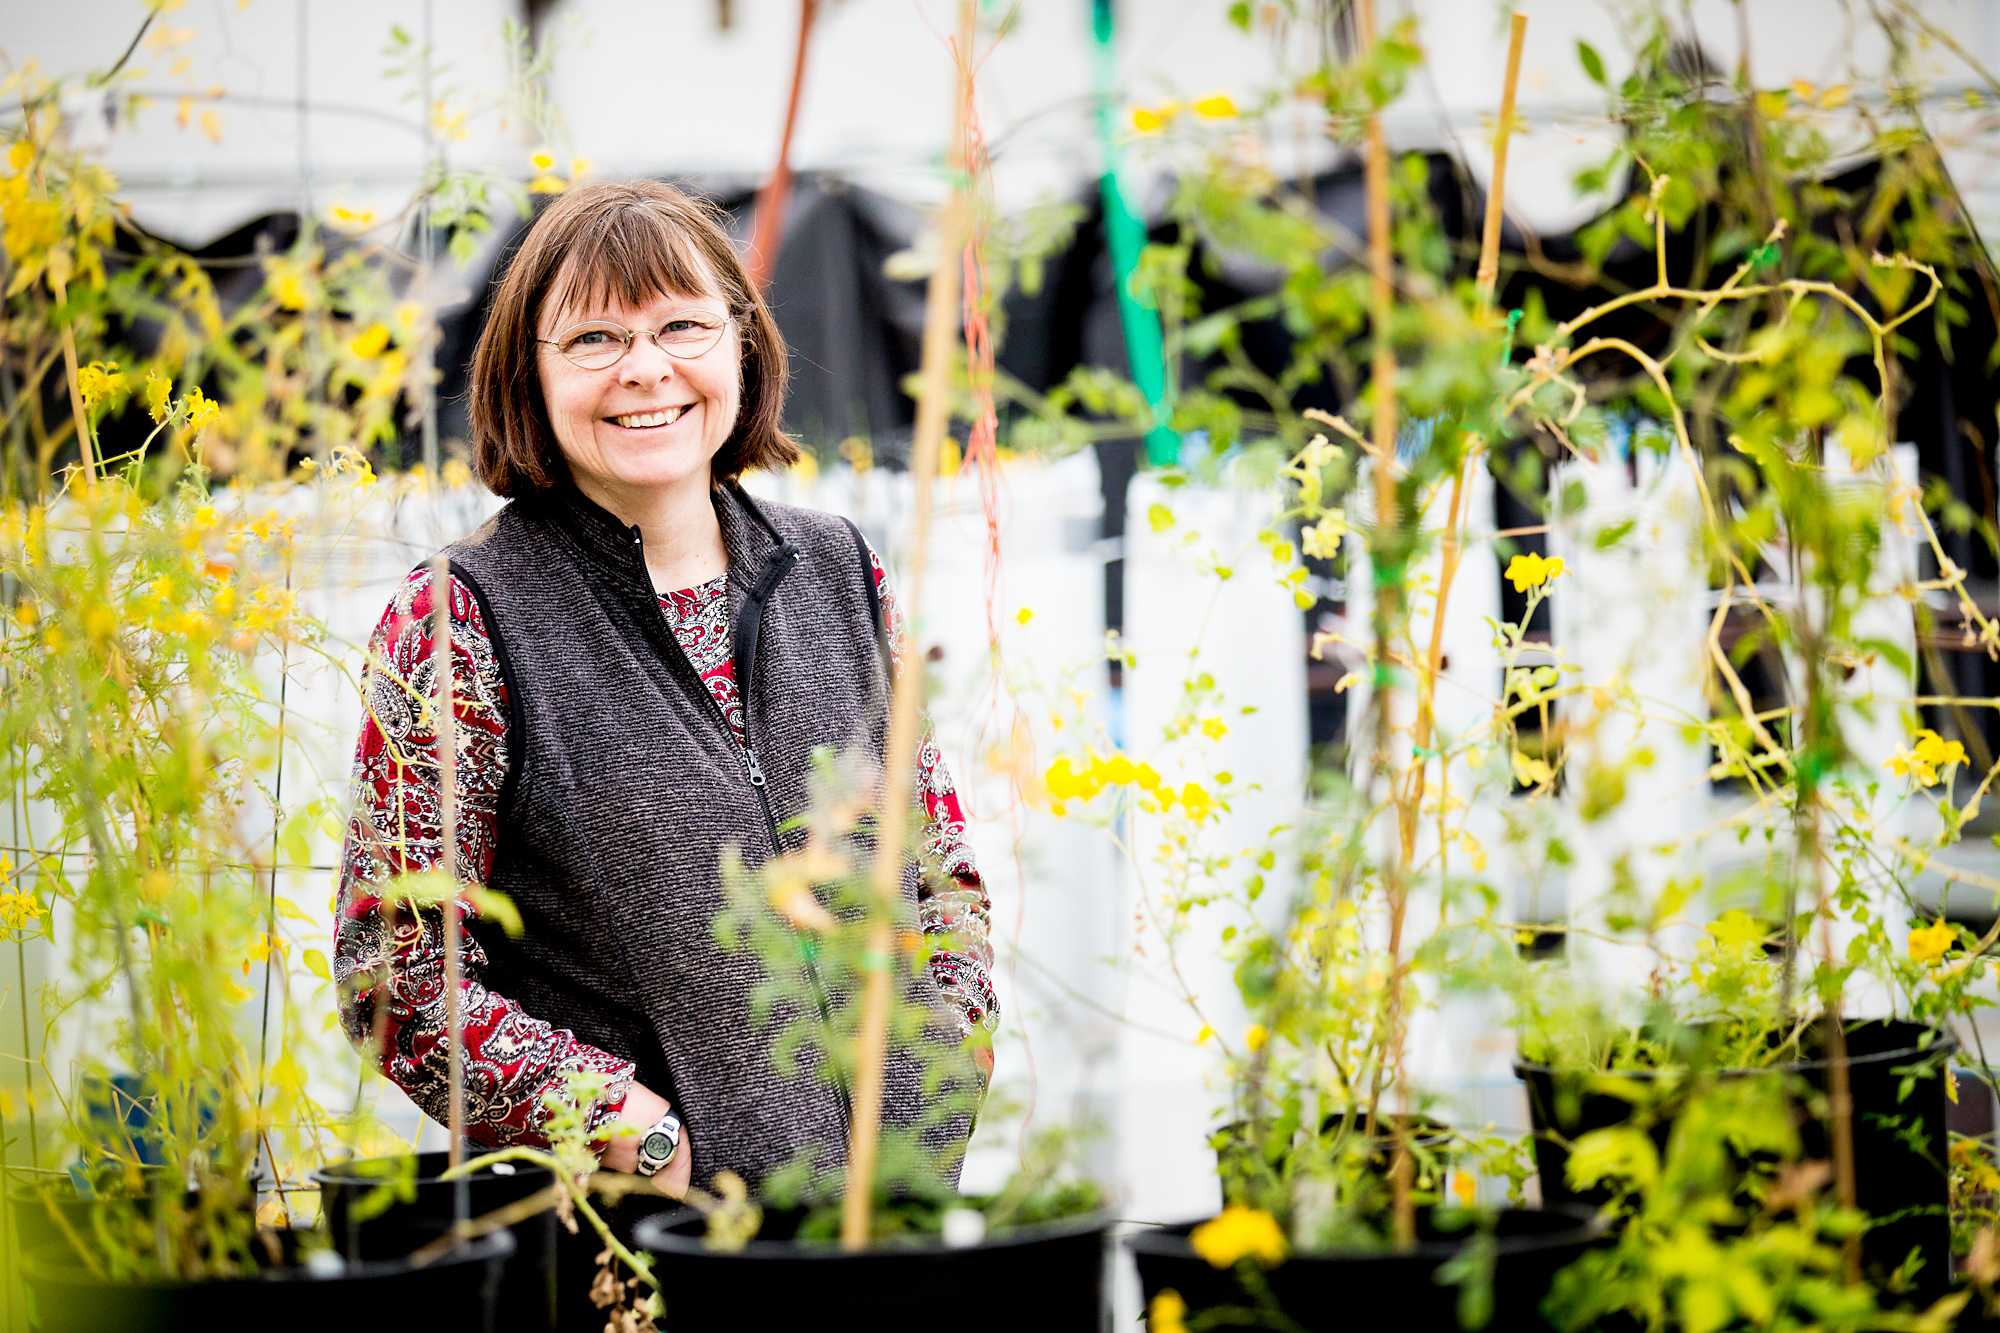 Evolutionary Biologist Patricia Bedinger stands in the Colorado State greenhouses surrounded by blooming wild tomatoes Thursday afternoon. Next March Bedinger will be traveling to Ecuador to work in the field and study Solanum Habrochaites, a type of tomato.